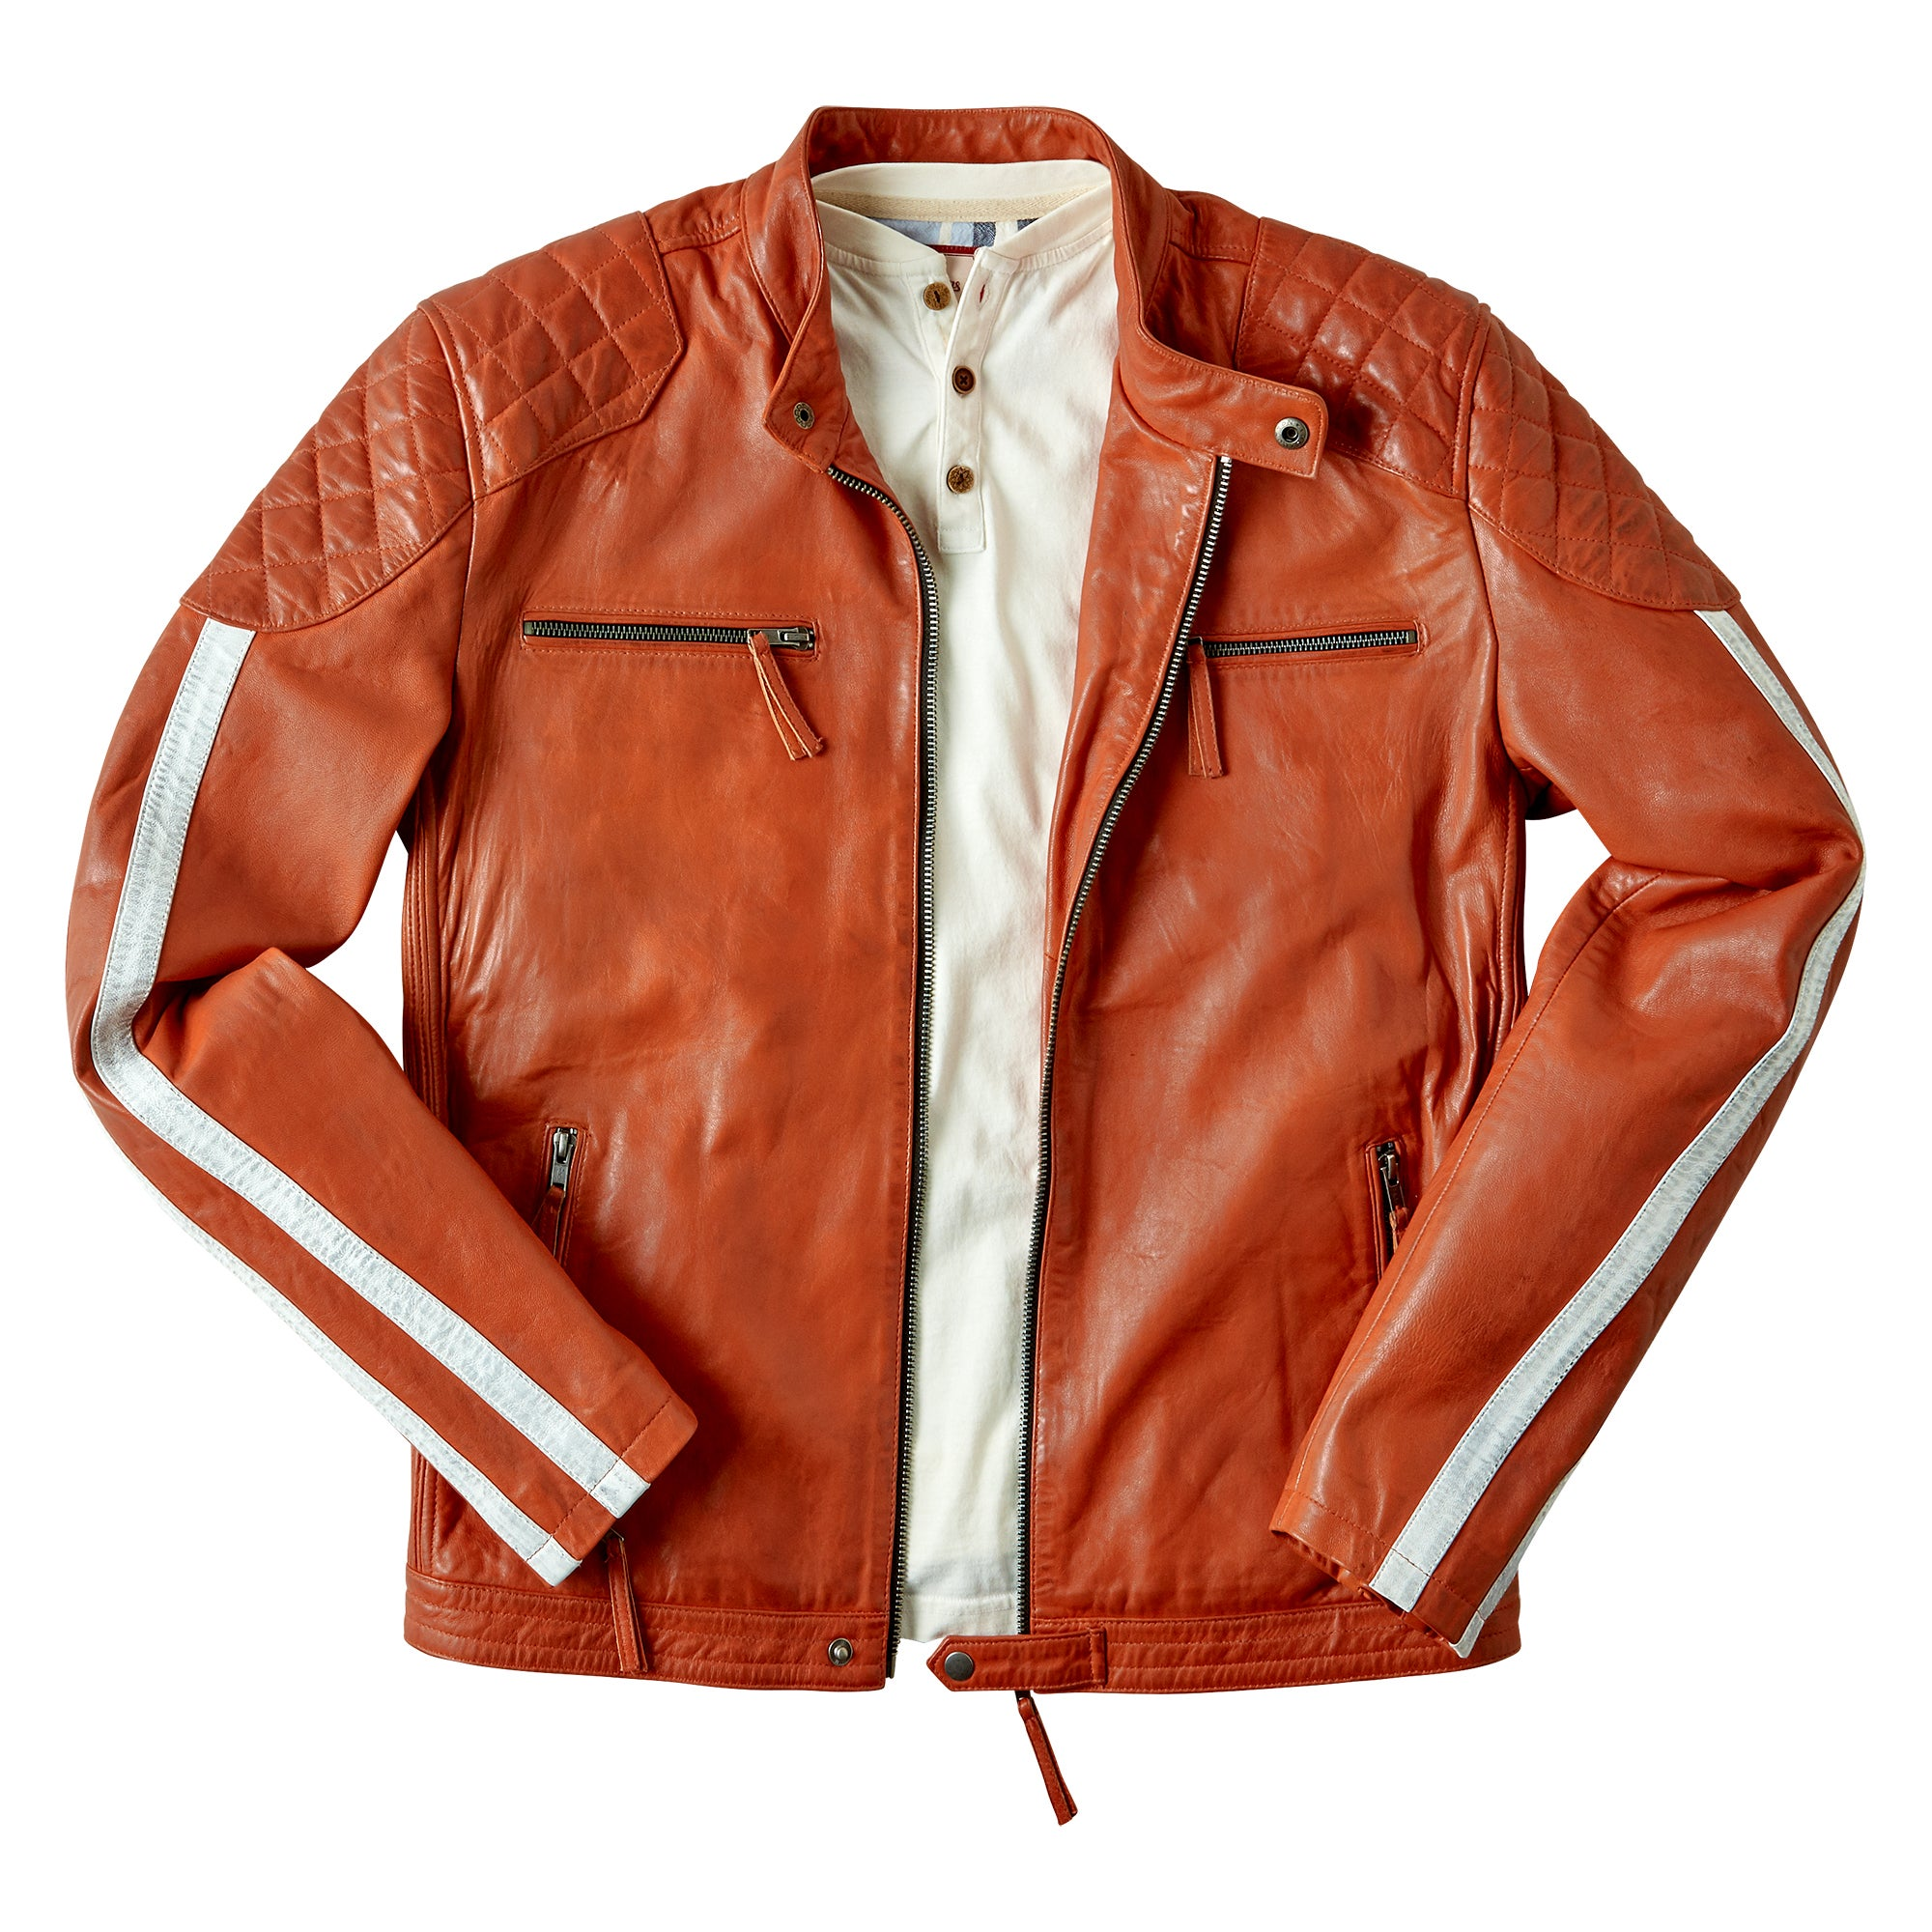 Road Holder Leather Jacket